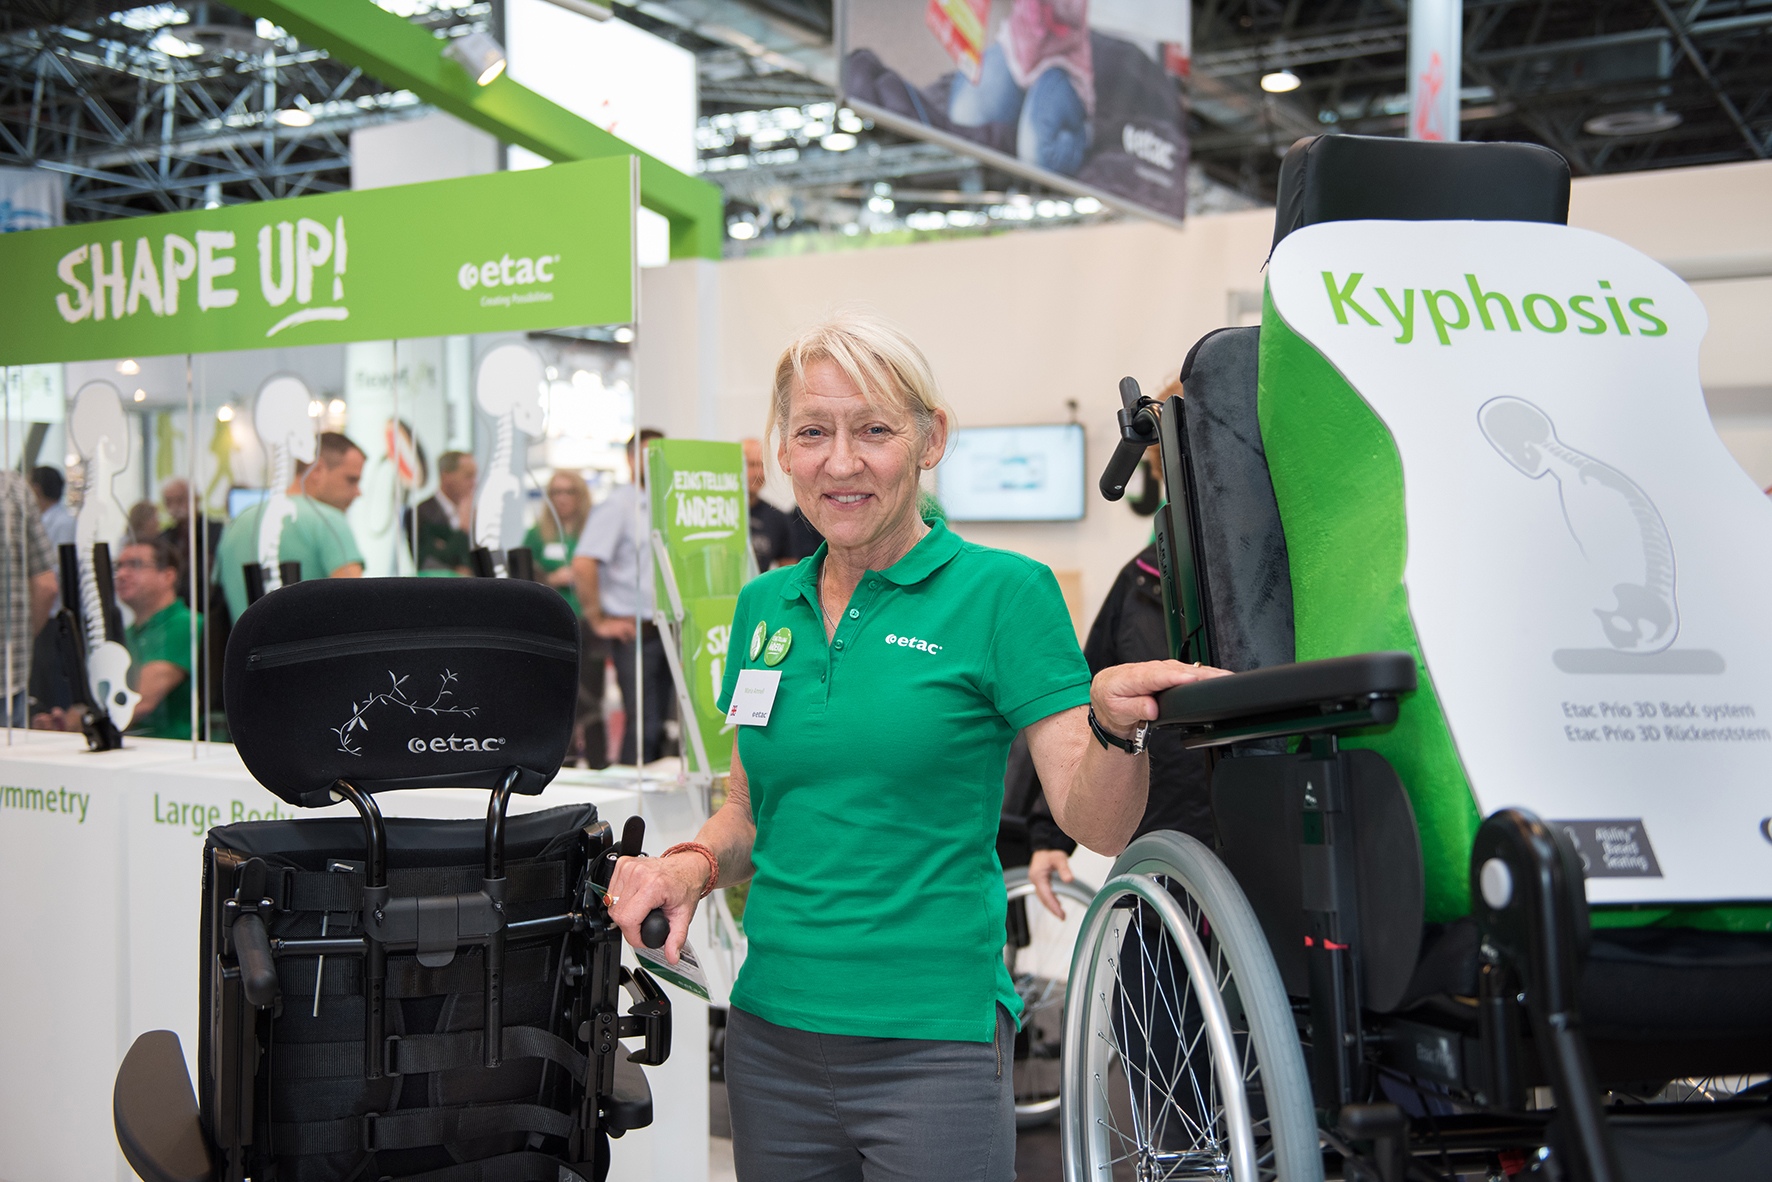 Largest ever new ETAC product launch delivers significant success at REHACARE 2016